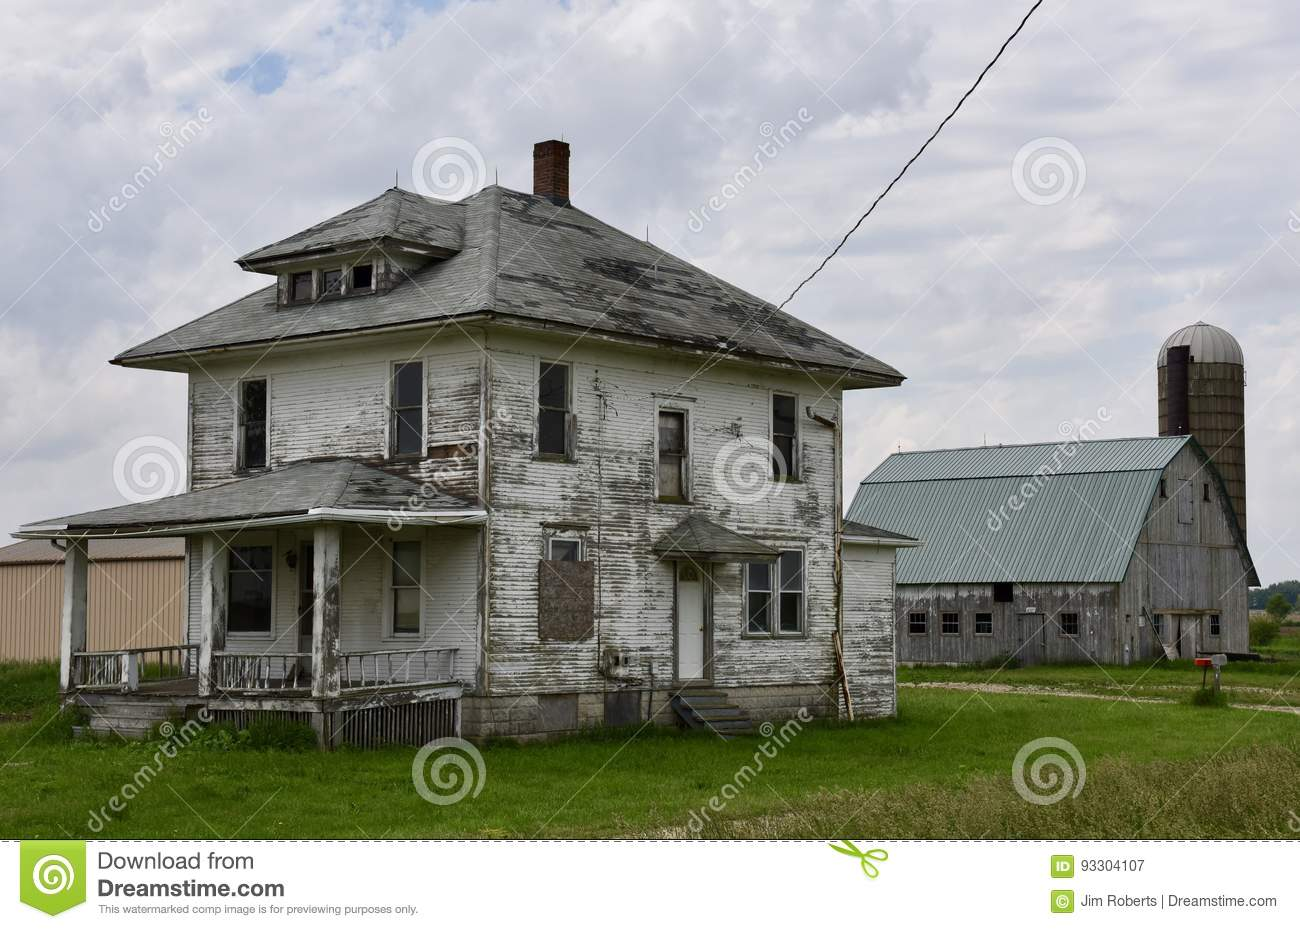 Illinois will county peotone - Abandoned House And Barn